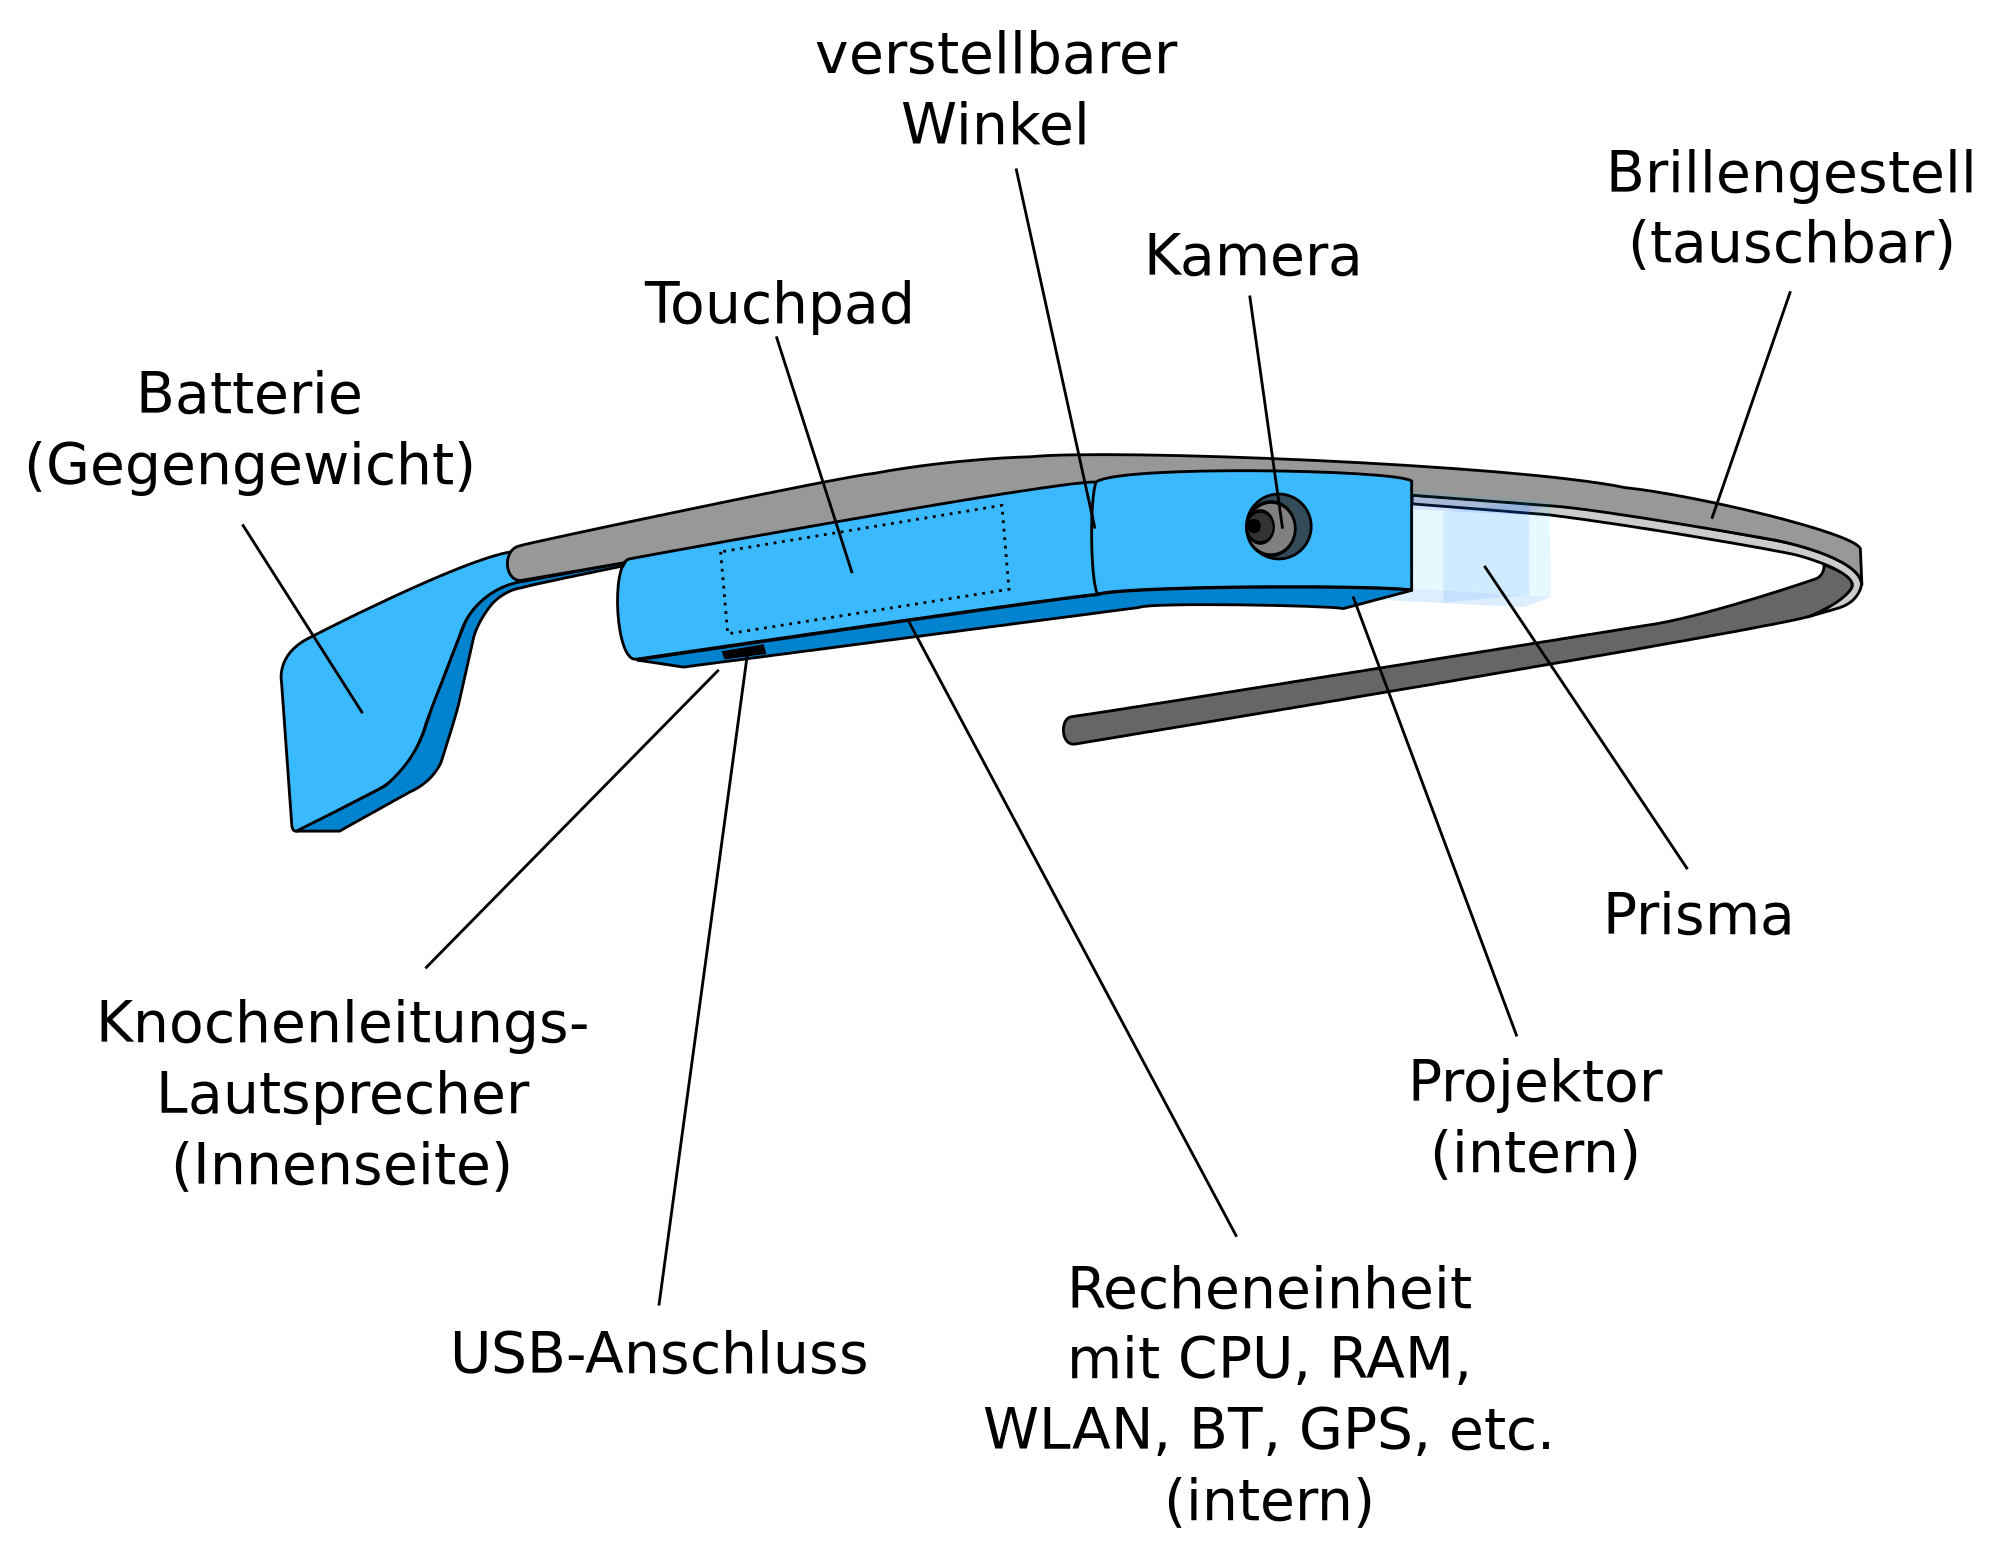 Datei:Google-Glass-Teile.png